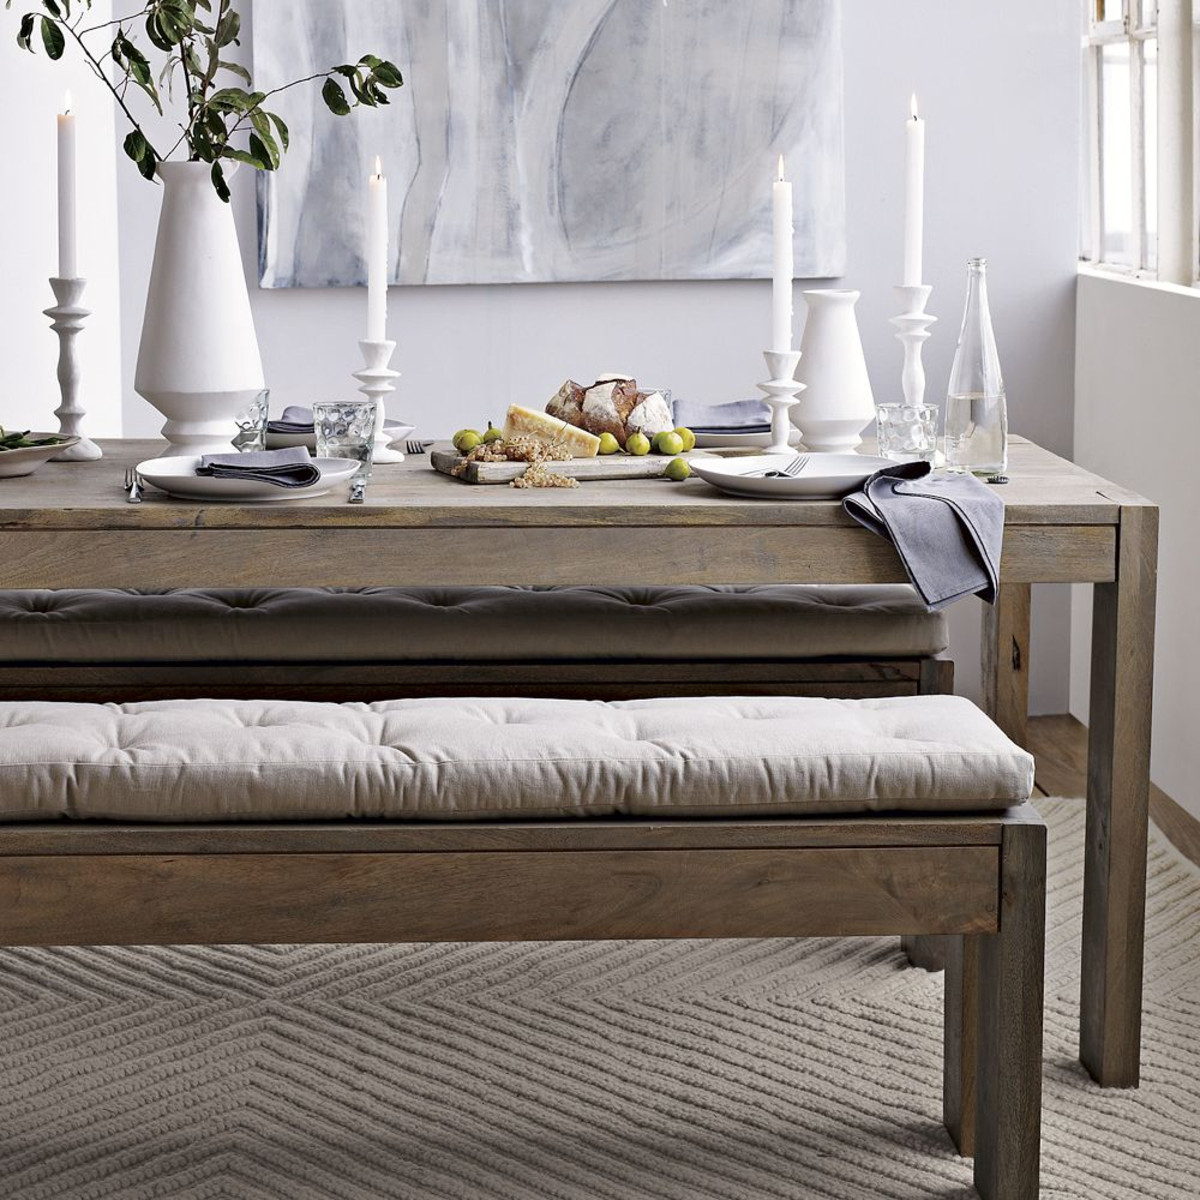 West Elm // Up To 30% Off - PROMO CODE: No code required>> Shop at West Elm